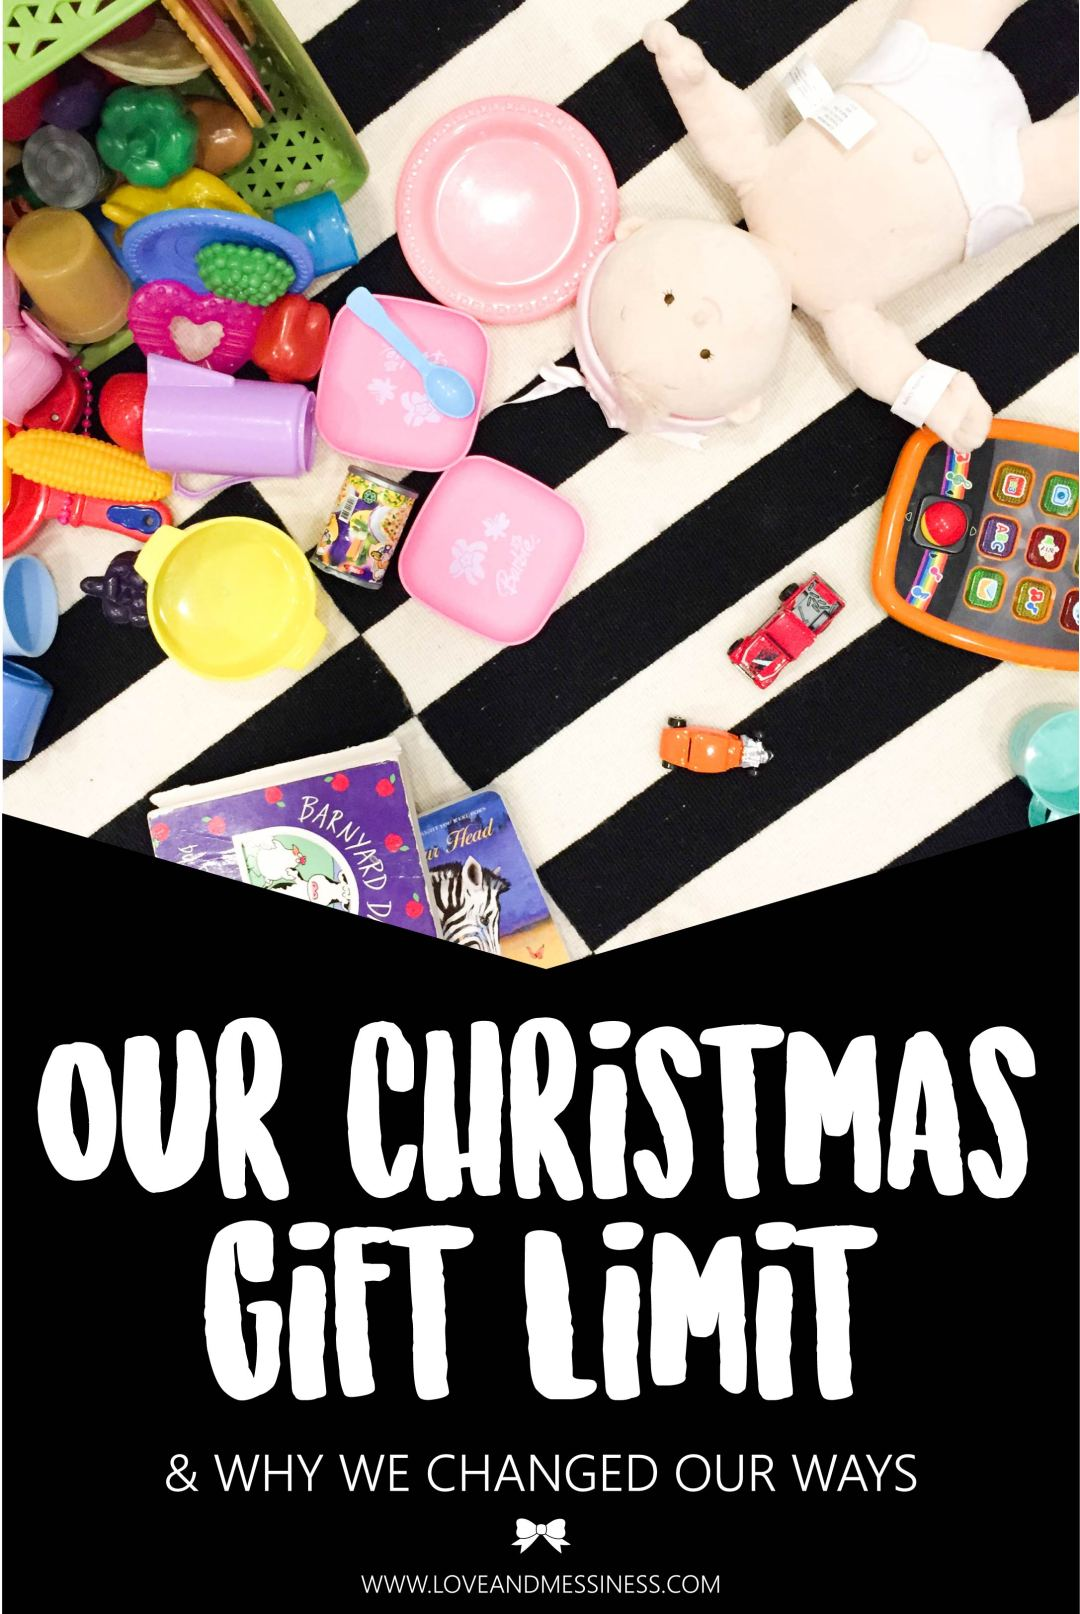 Our Christmas Gift Limit & Why We Changed Our Ways | LoveAndMessiness.com